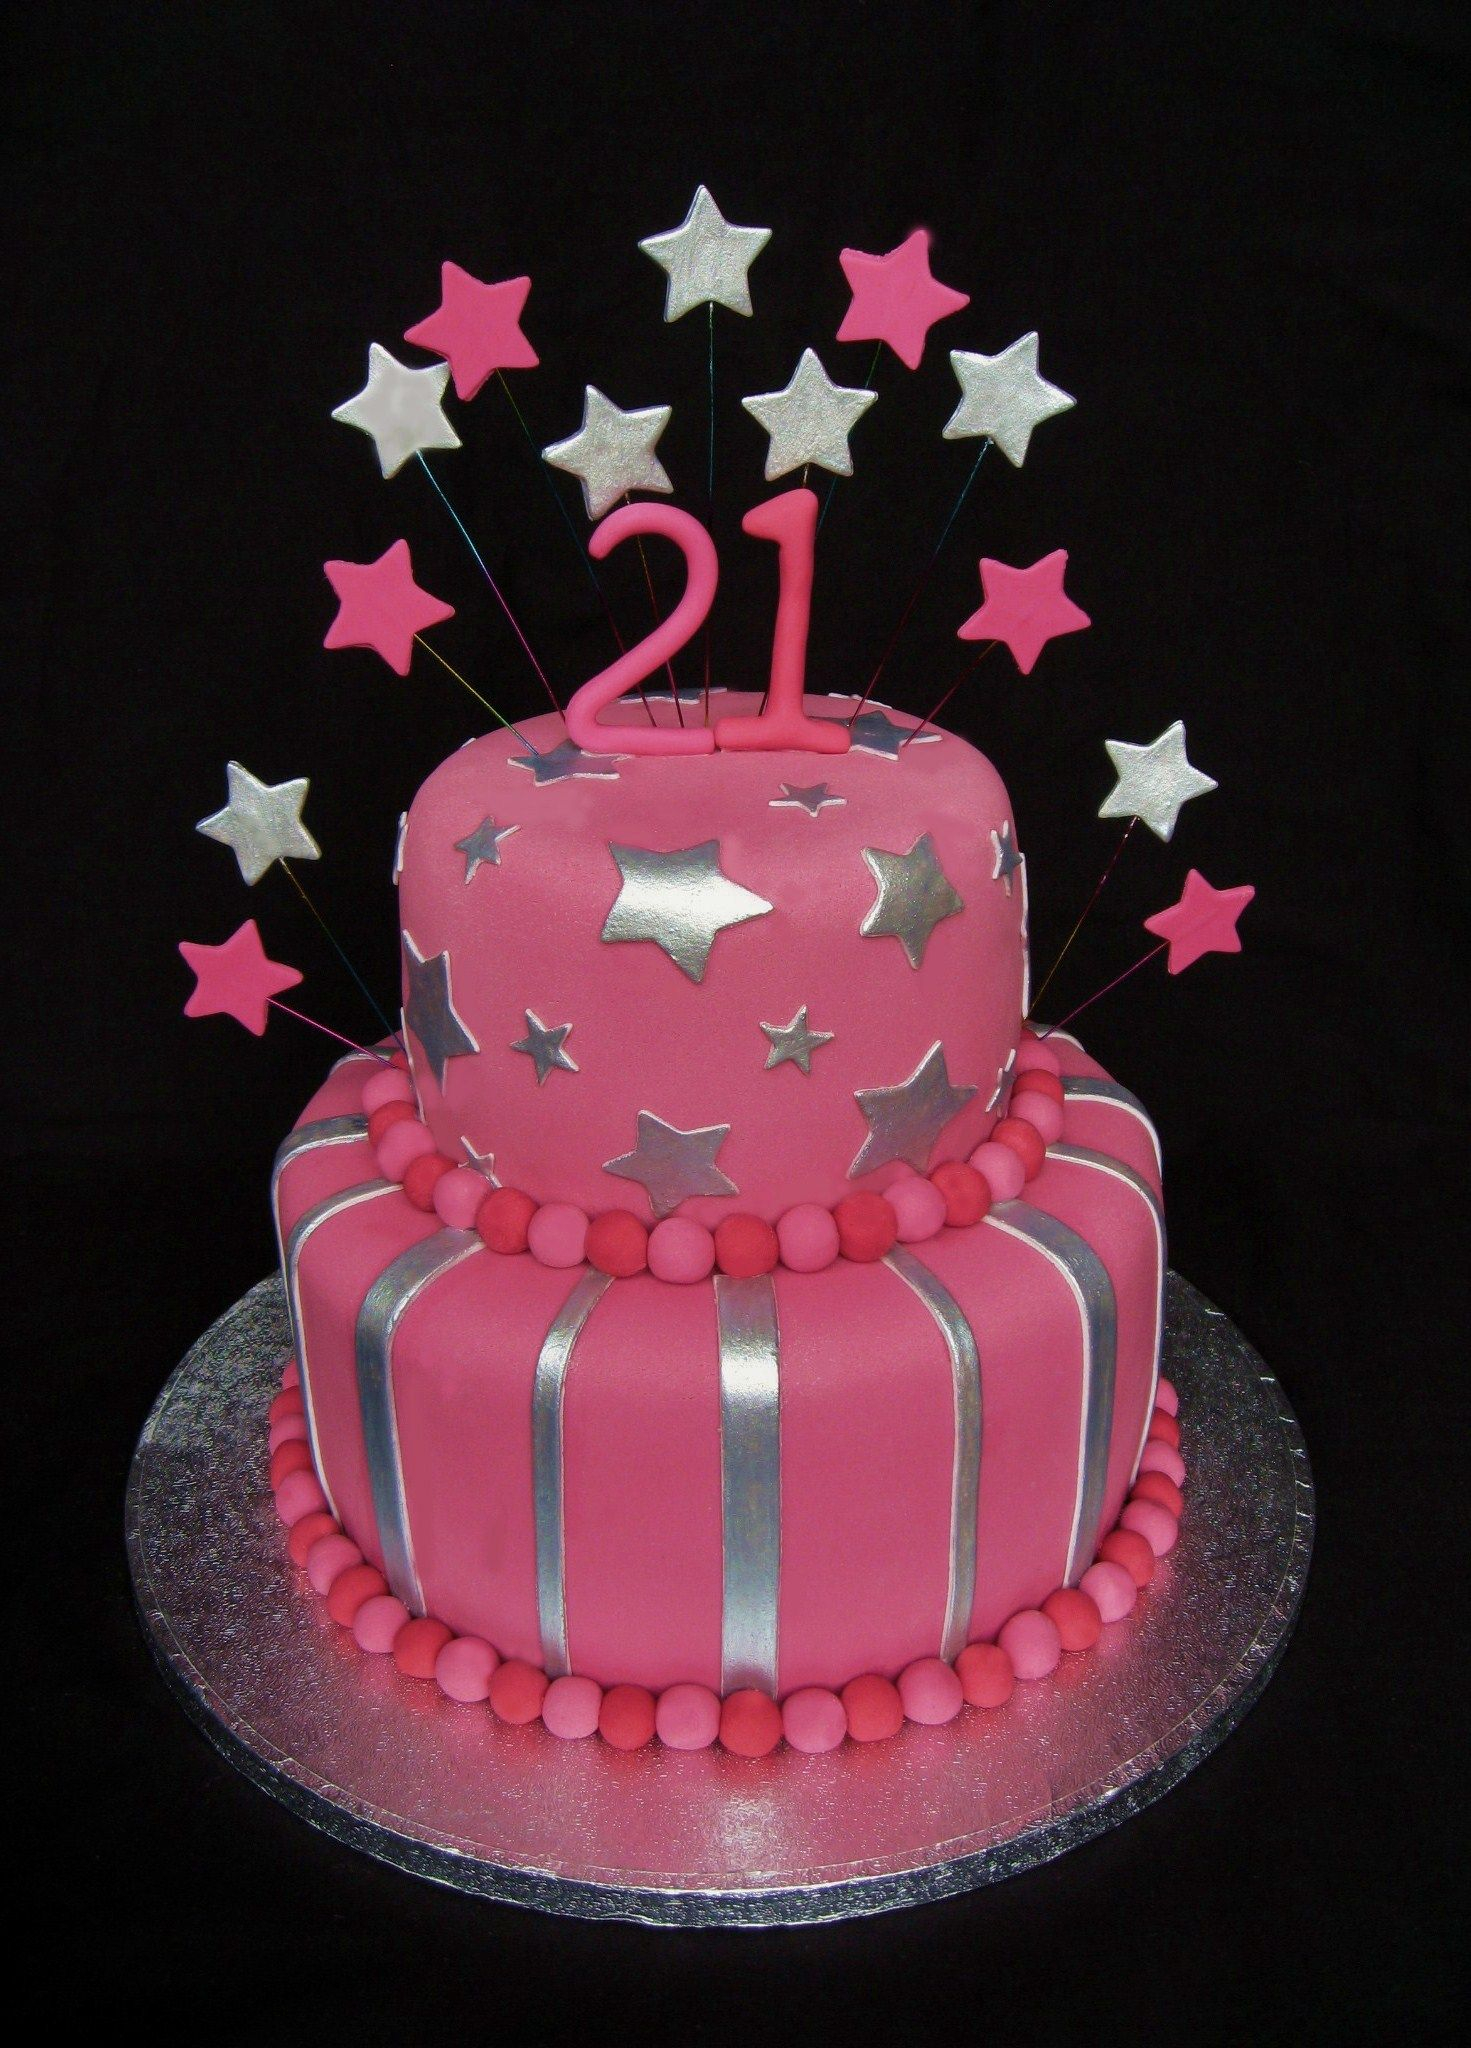 32 Excellent Photo Of 21 Birthday Cakes For Her